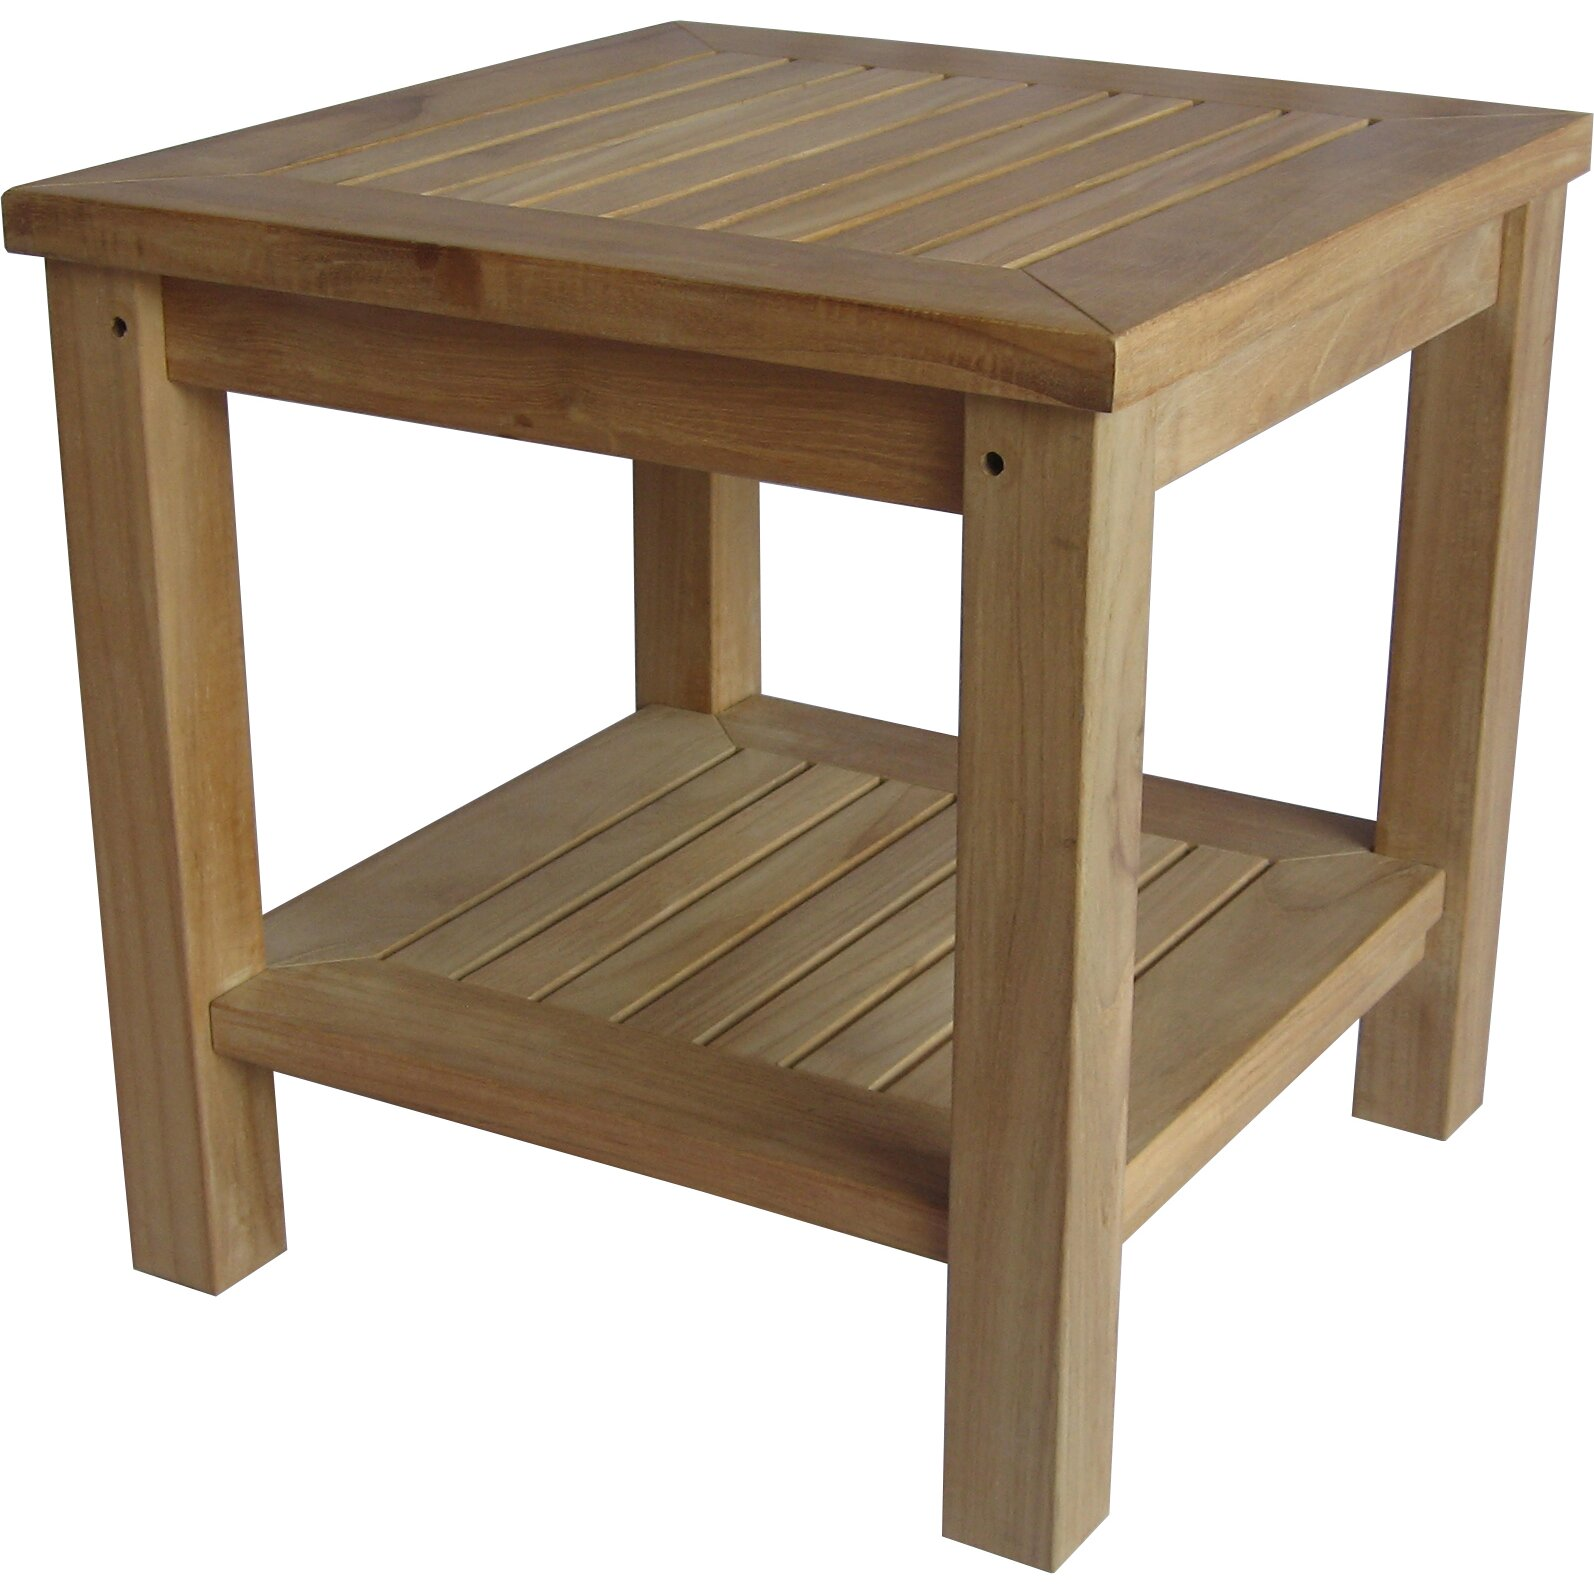 Arbora teak bristol teak side table reviews wayfair for Regulation 85 table a